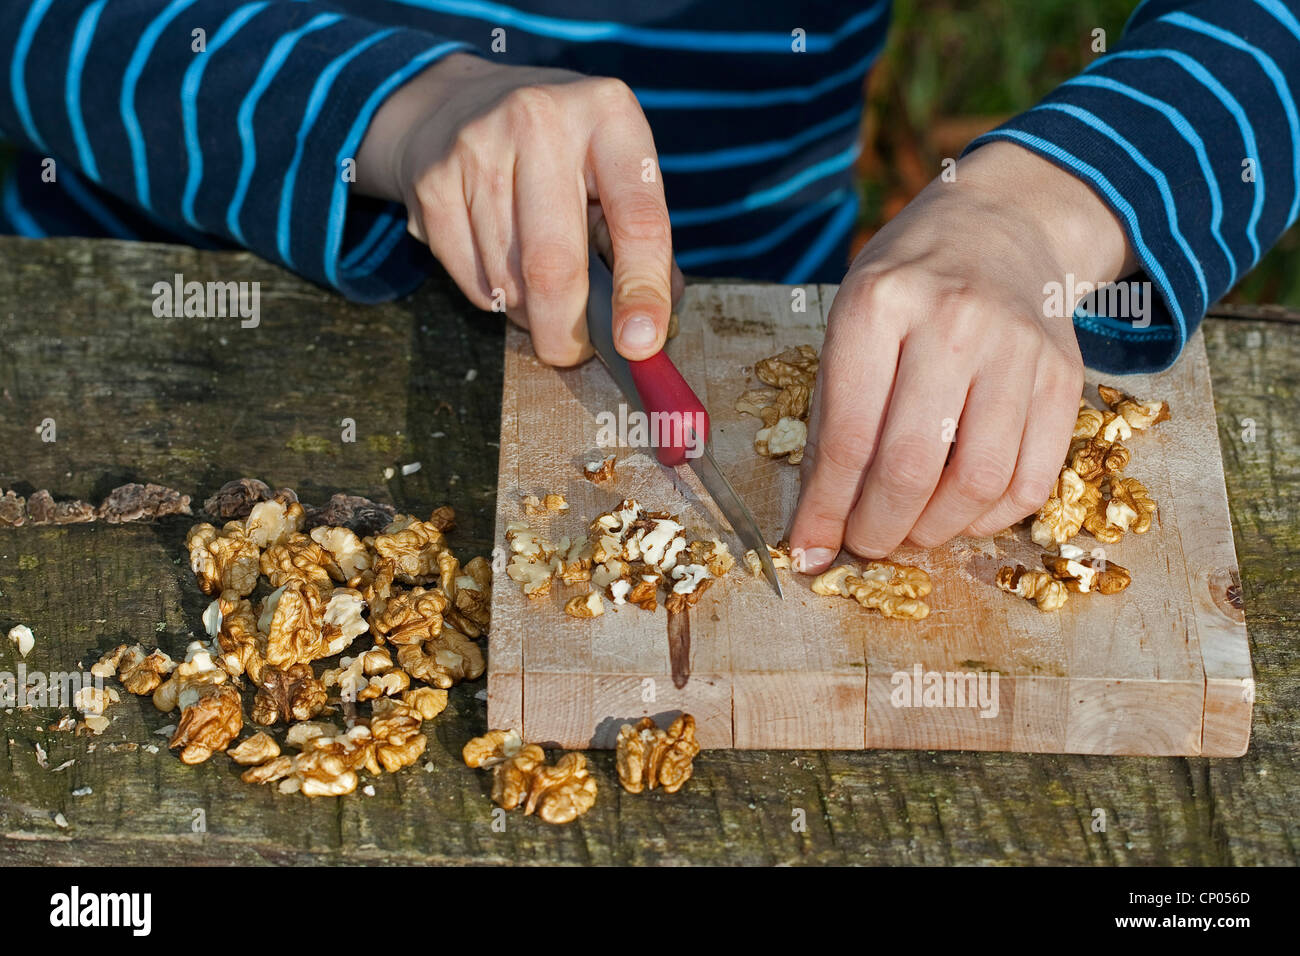 boy making pesto from self-collected walnuts and sunflower seeds, olive oil and parmesan cheese, walnuts are hackled, - Stock Image